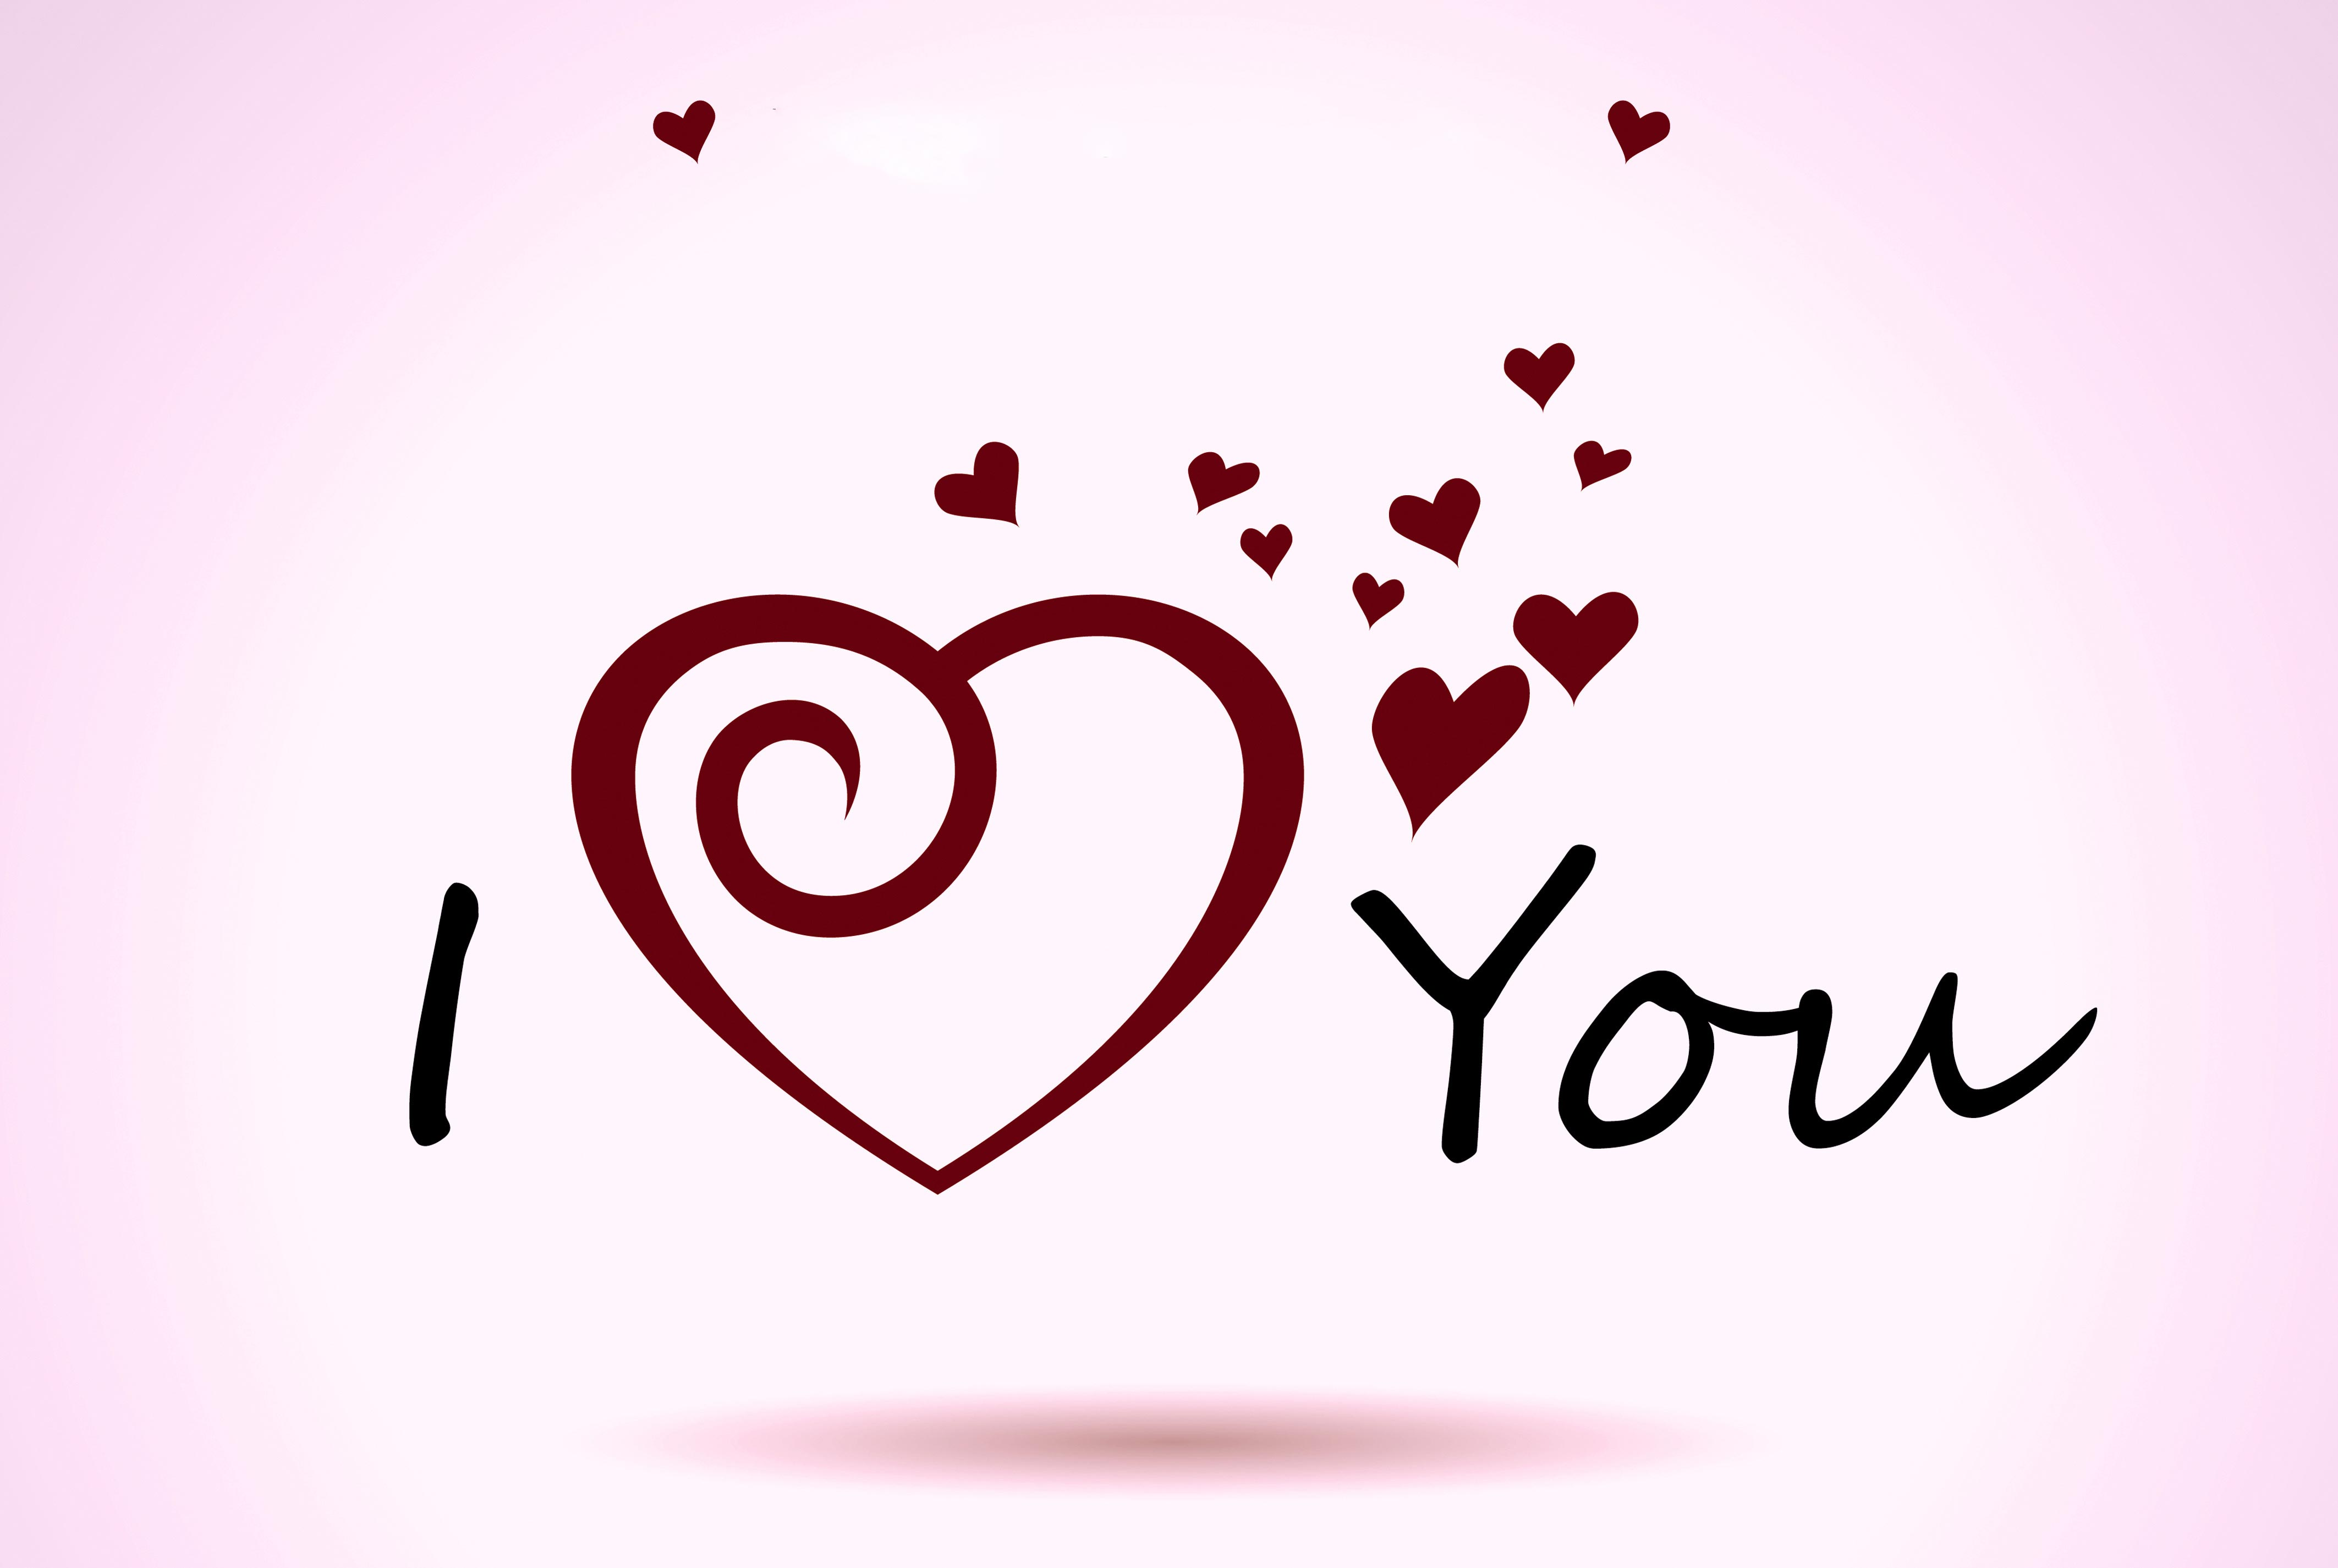 I Love U Jyoti Wallpaper : I Love You Wallpapers HD A21 - HD Desktop Wallpapers 4k HD